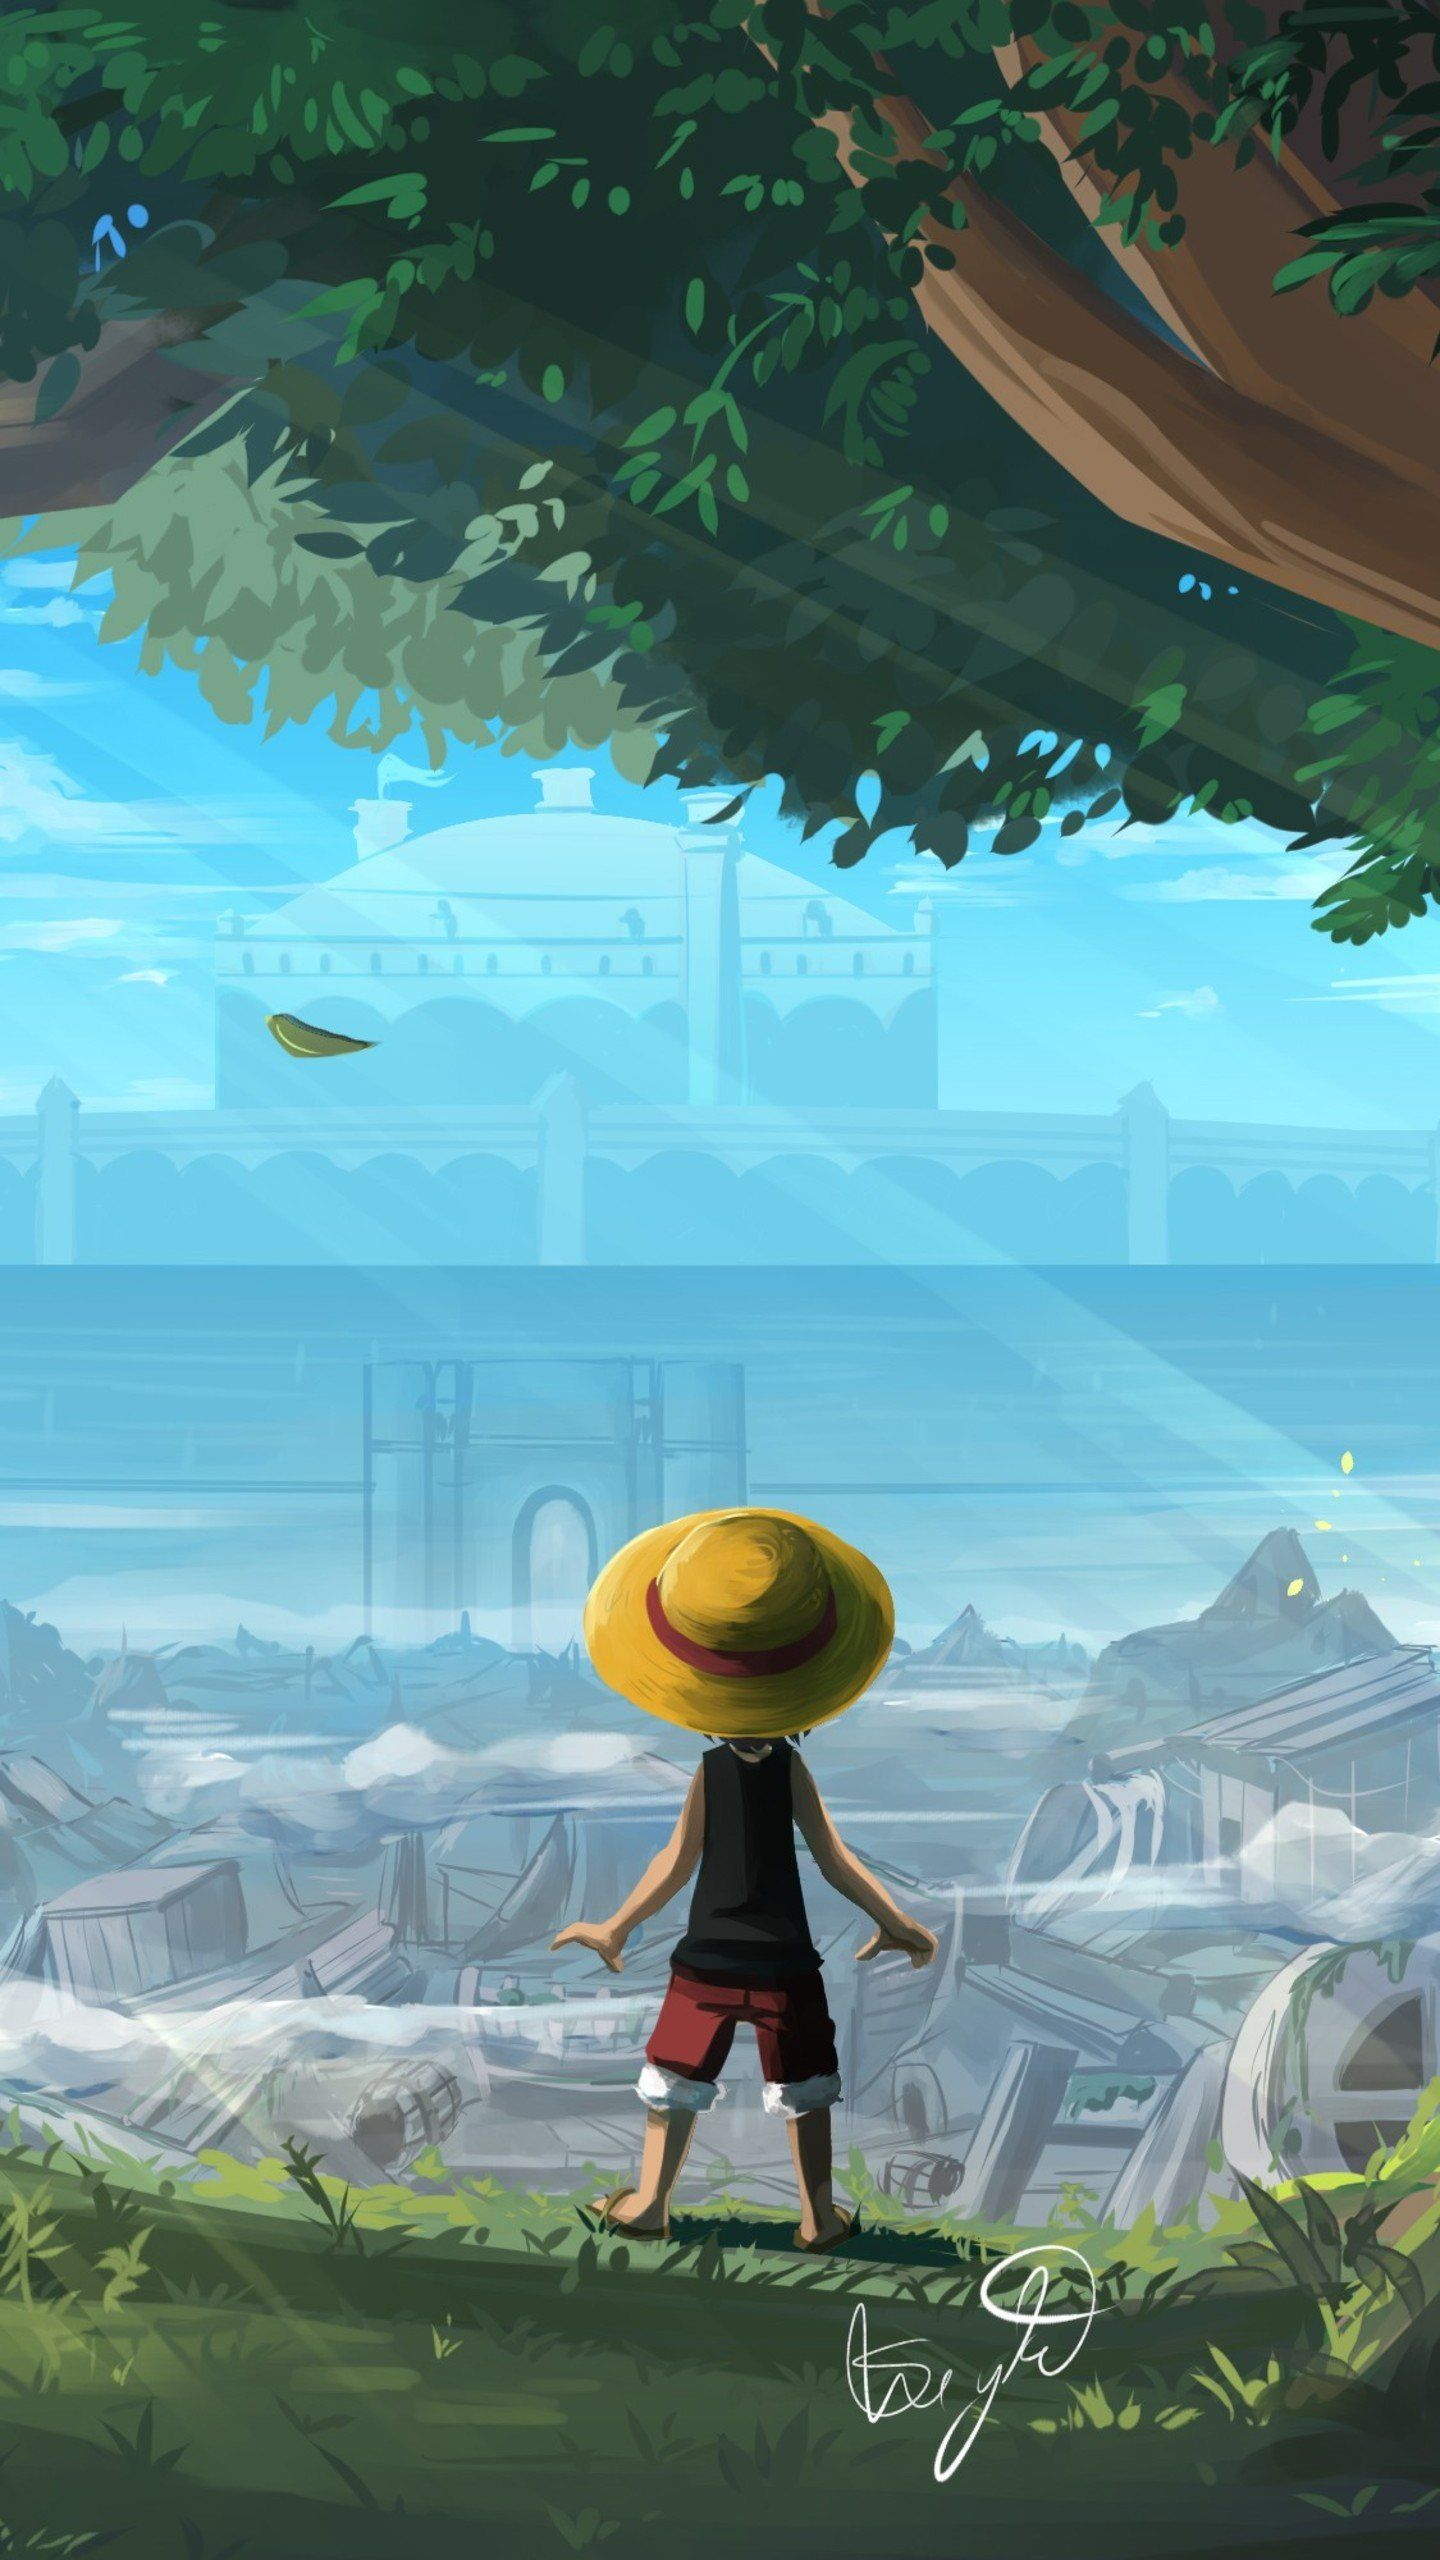 Reached At The Edge Of Forest 4k Hd Artist Wallpapers Photos And Pictures One Piece Wallpaper Iphone Anime Wallpaper Chibi Wallpaper